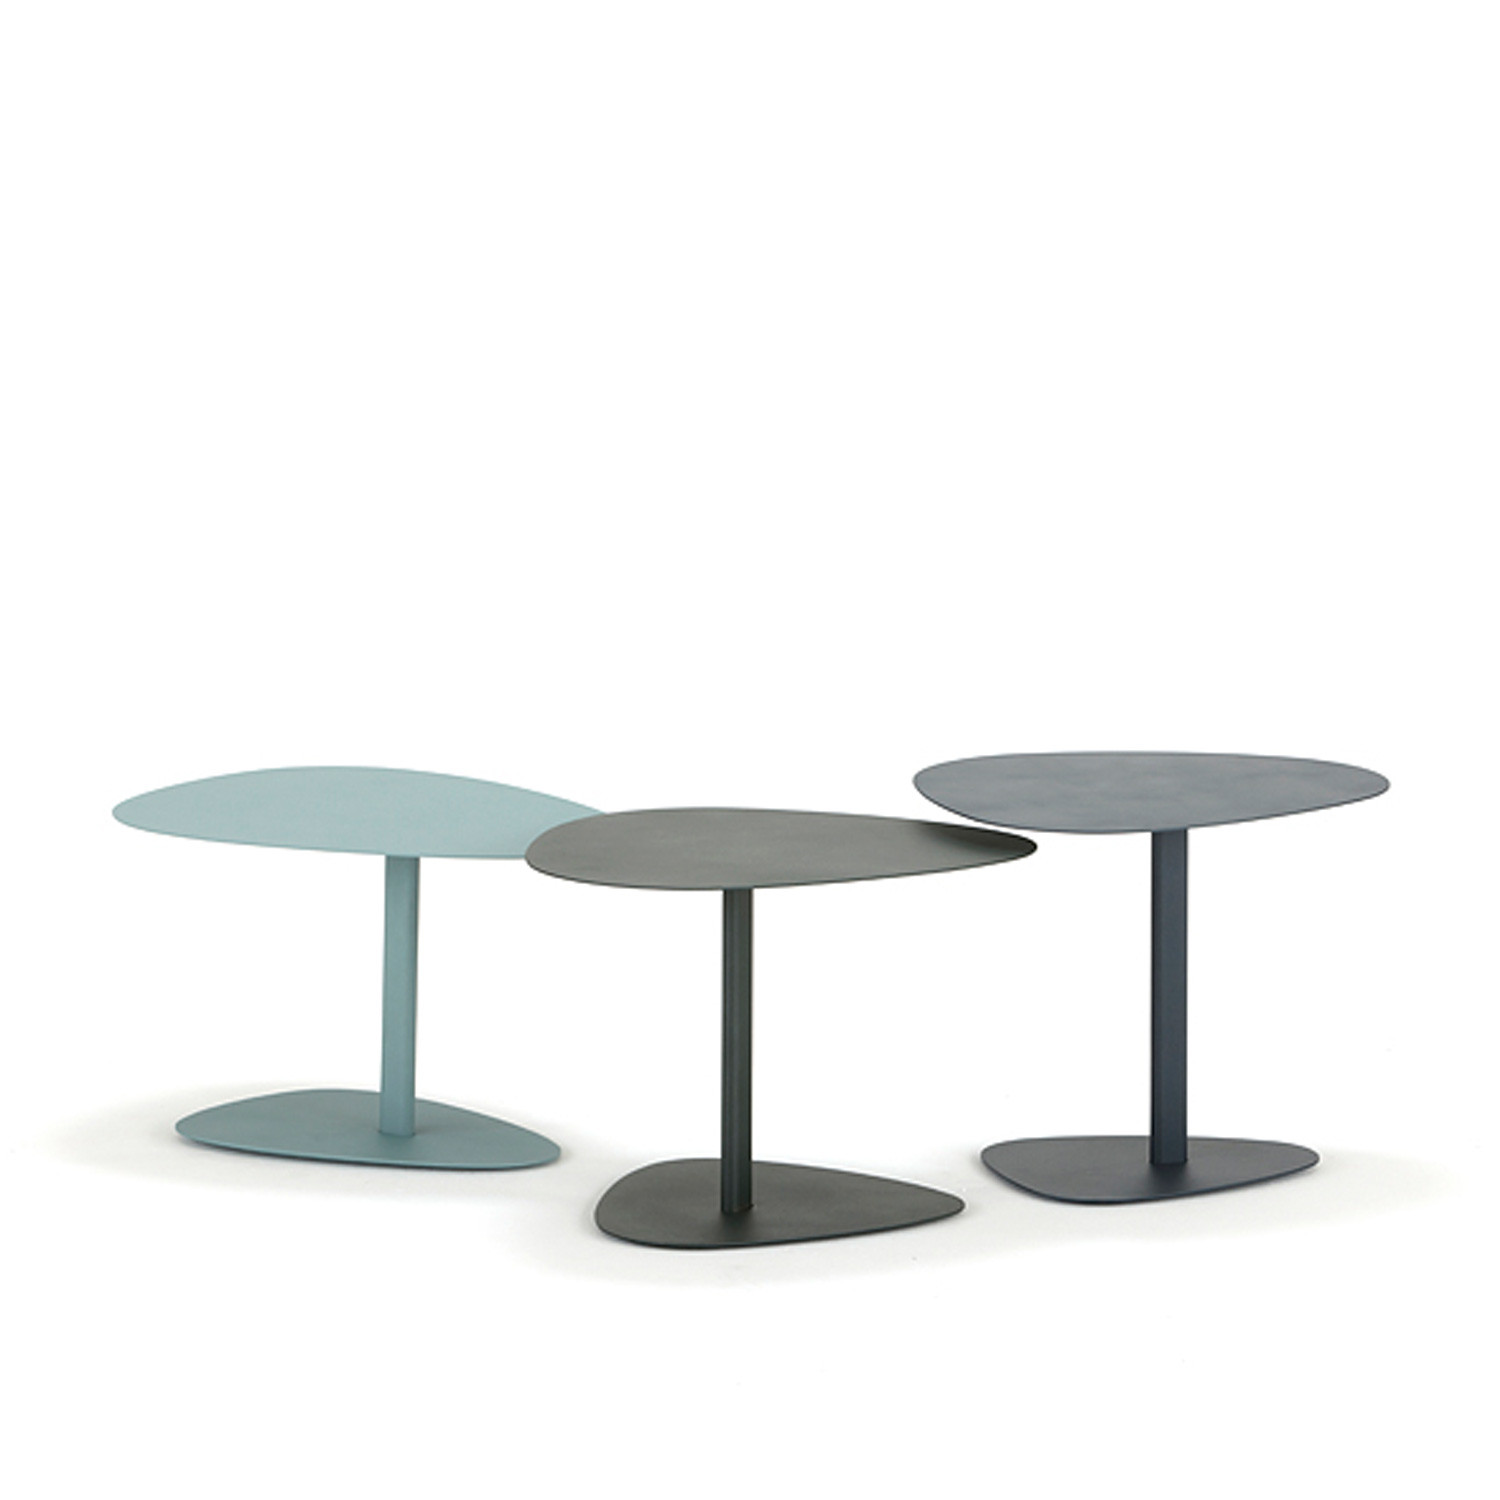 Sunda 1 Side Tables from Allermuir